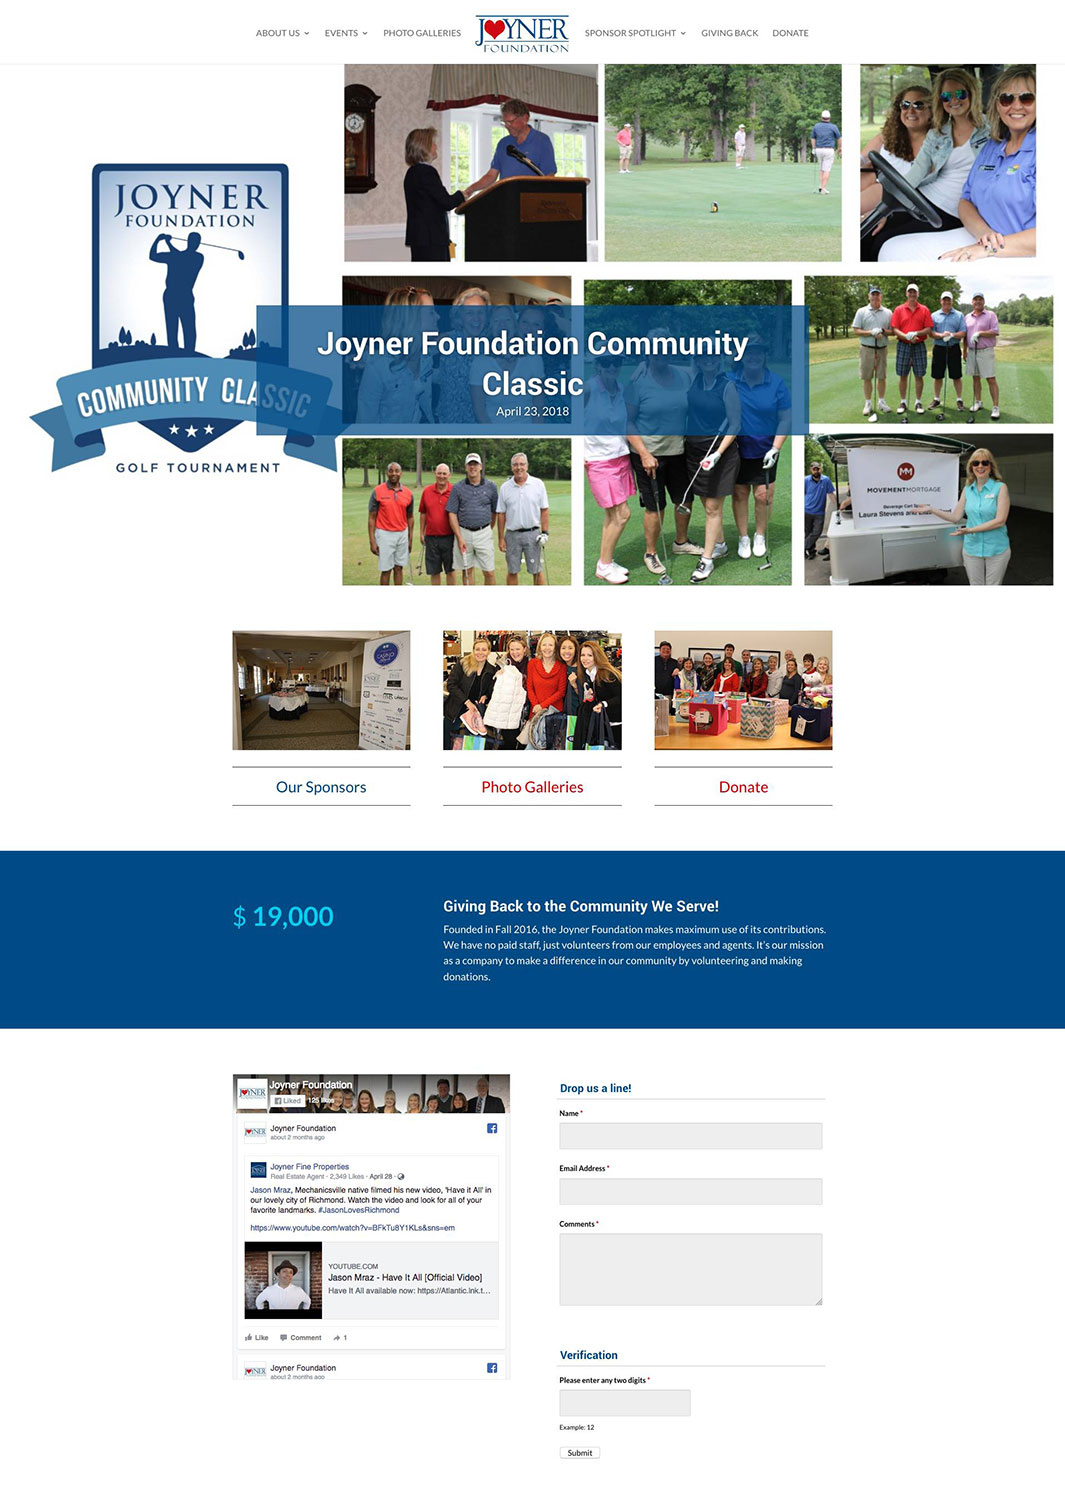 Joyner Foundation Website